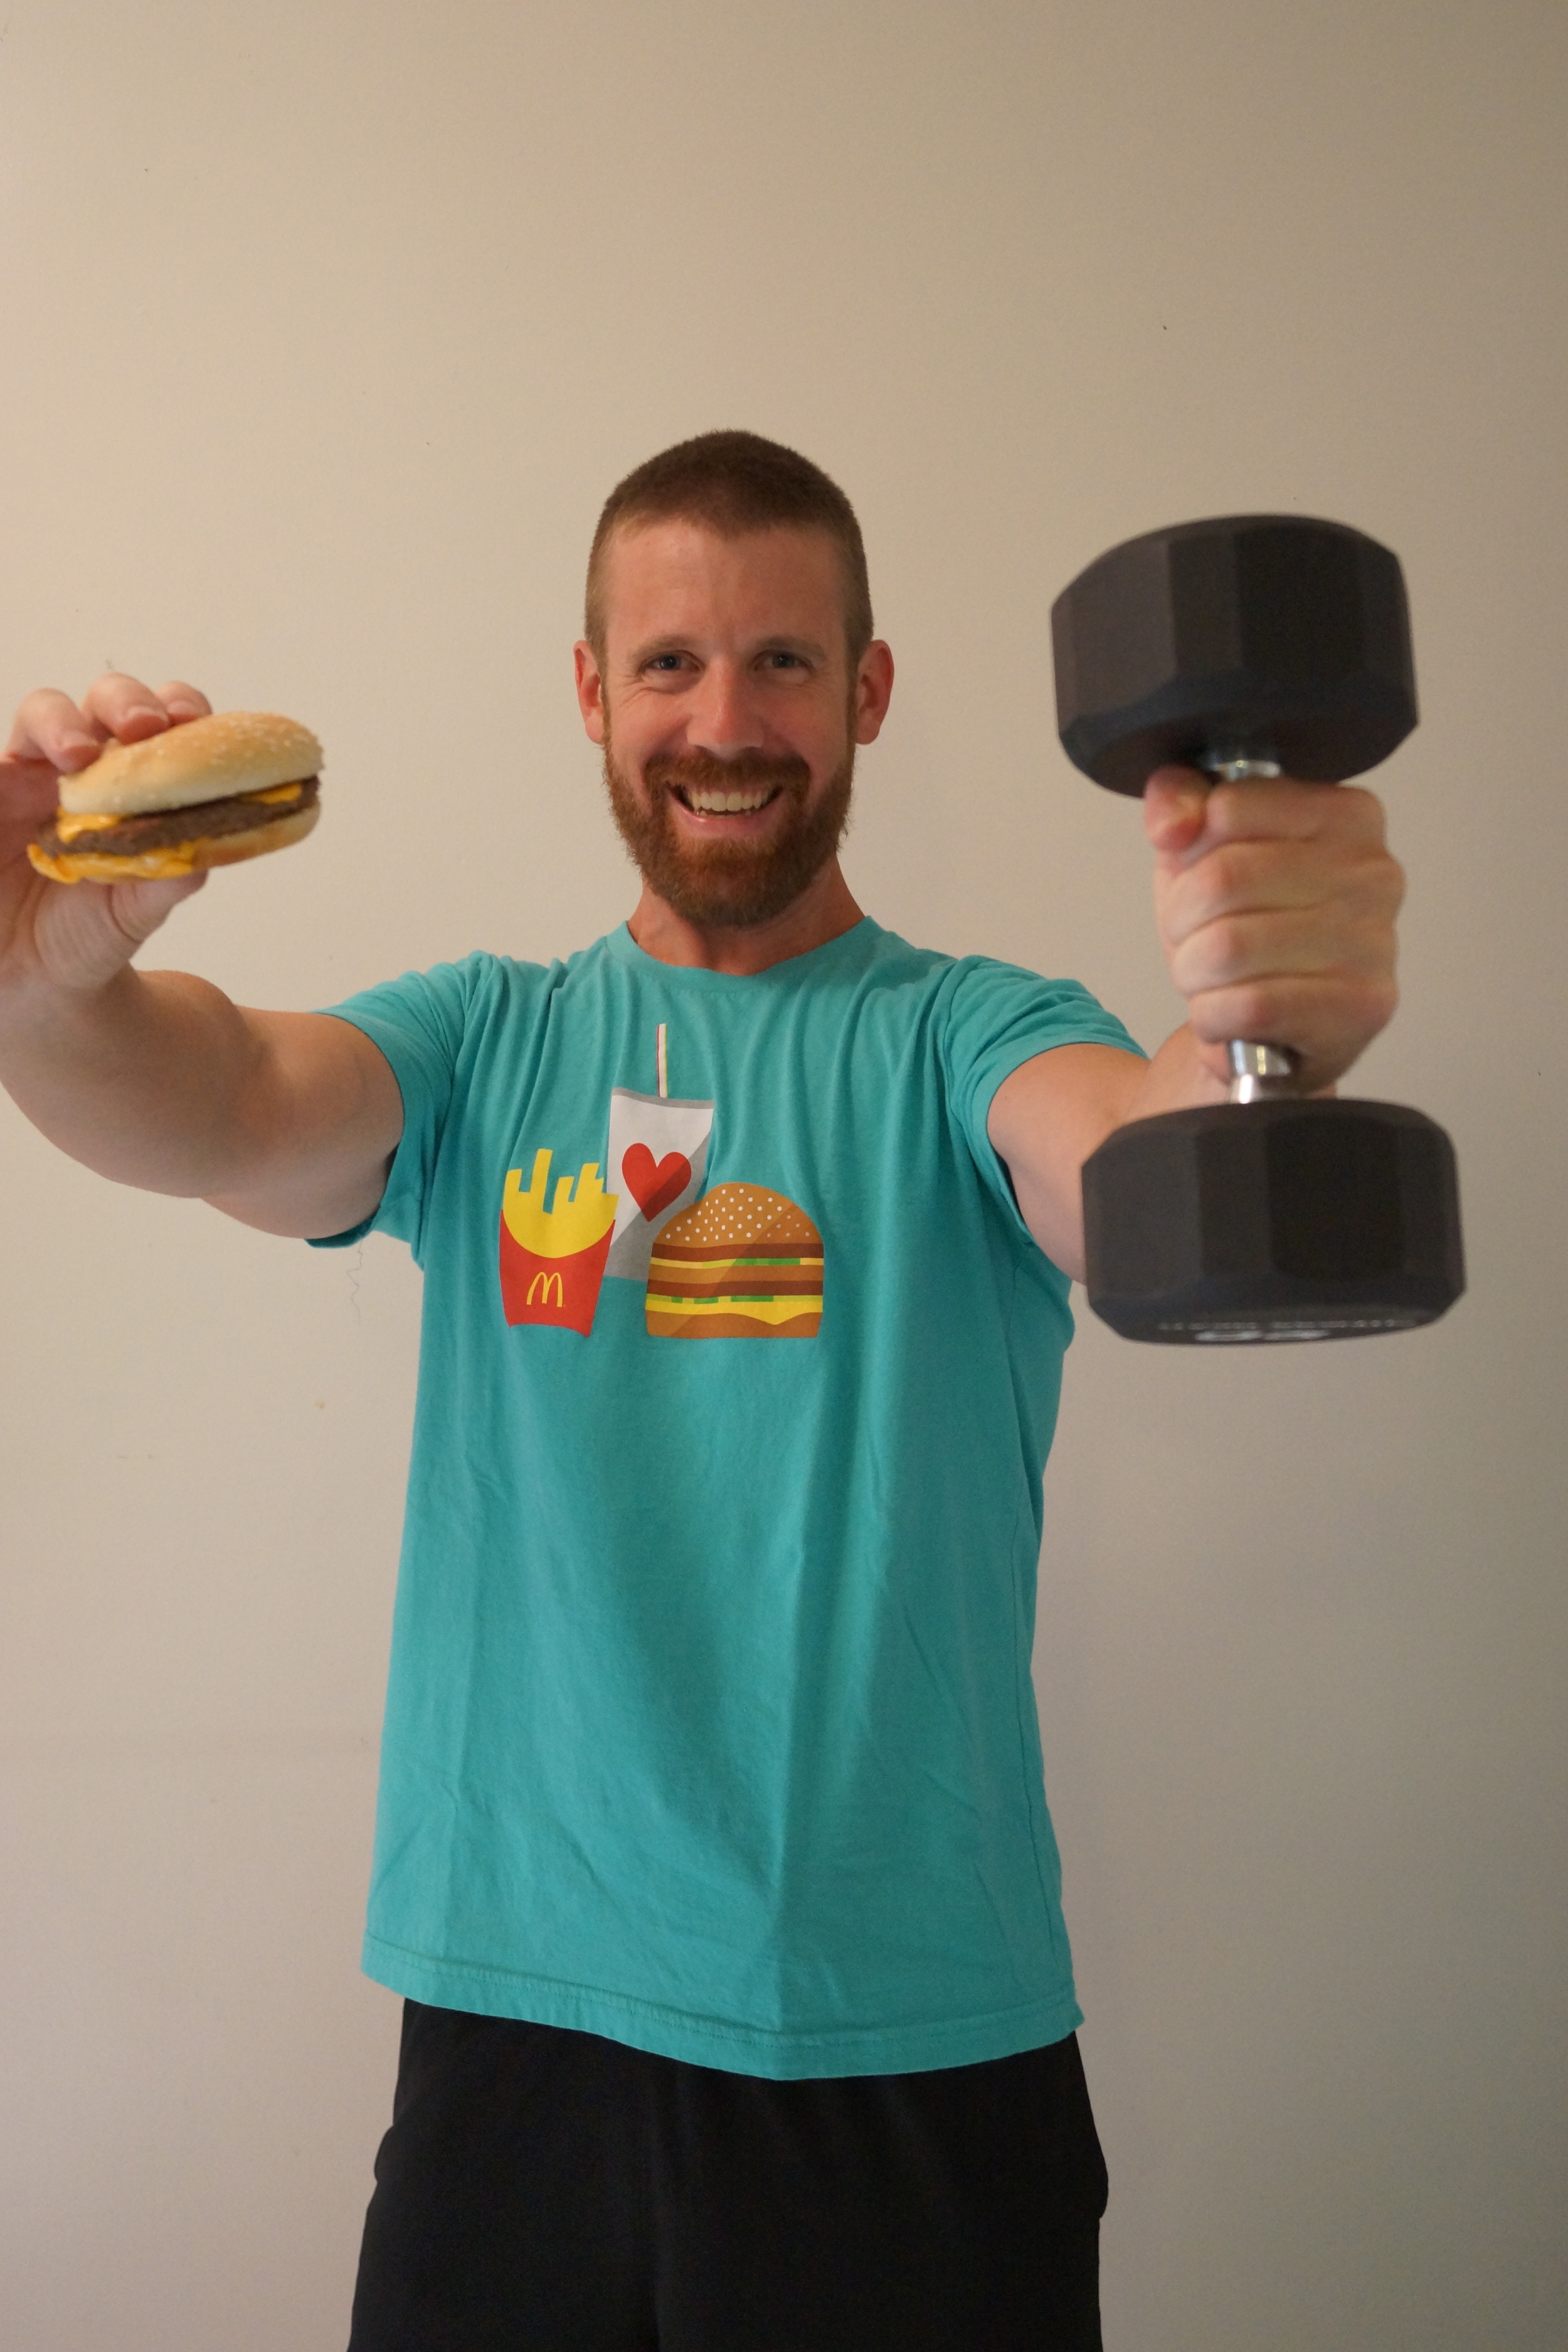 McDonald's Happy Meal Cheeseburger and Weights